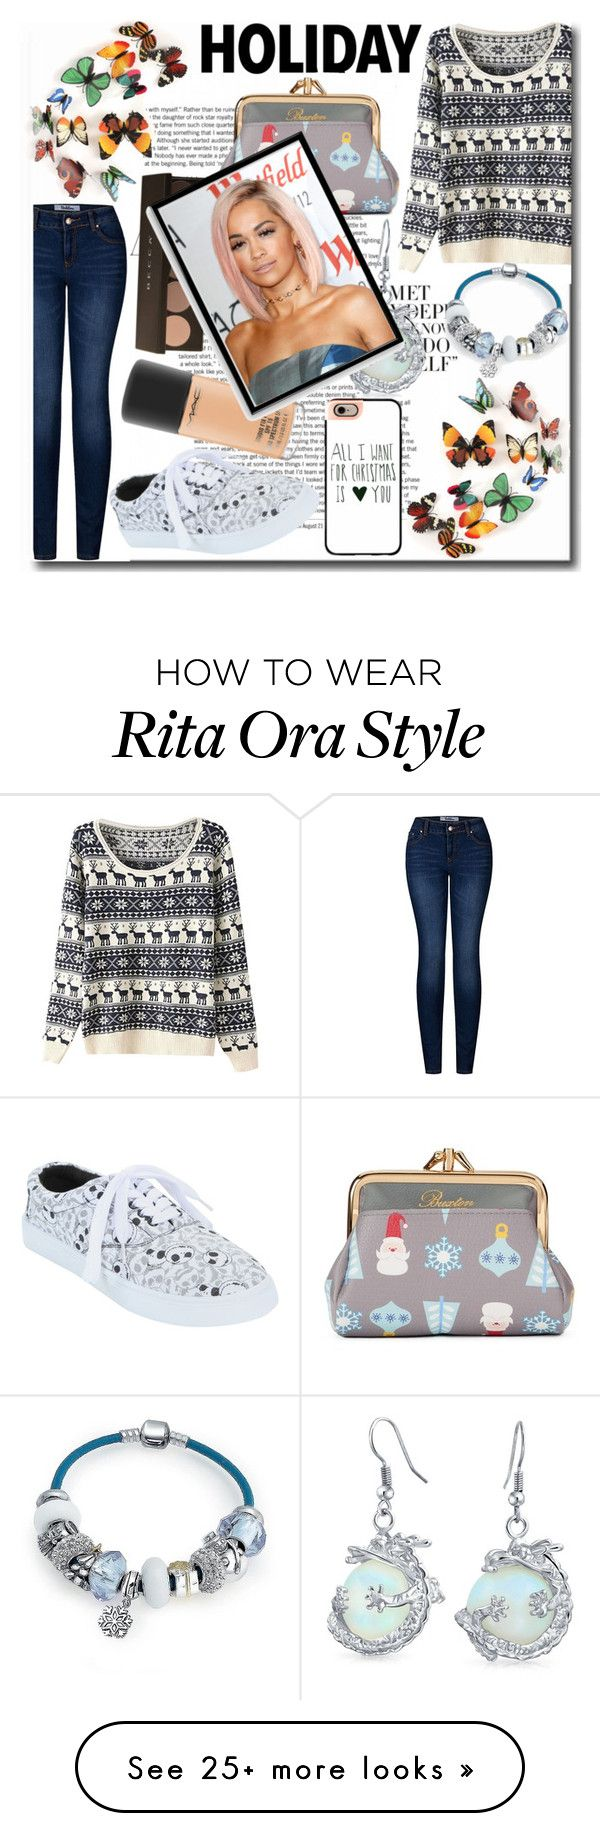 """""""Casual Christmas"""" by emmy-124fashions on Polyvore featuring 2LUV, Buxton, Casetify, Bling Jewelry, MAC Cosmetics, Bomedo and Christmas"""